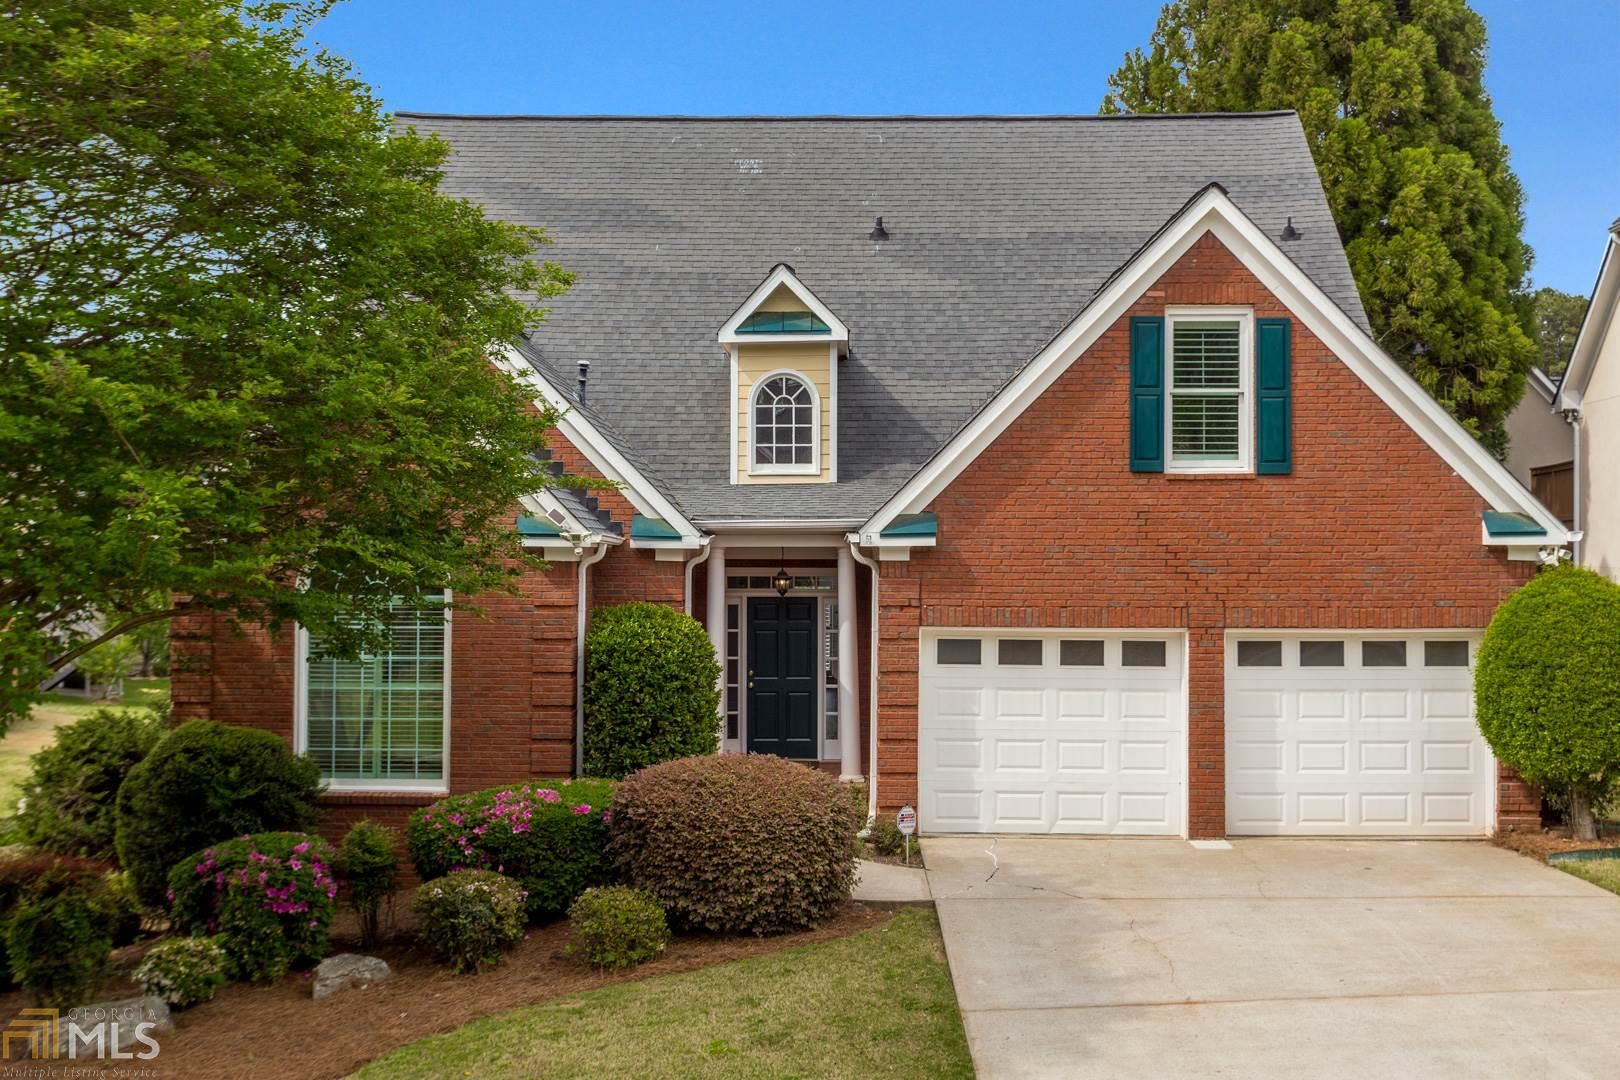 4997 SECLUDED PINES DR, Marietta, GA 30068 - #: 8962987